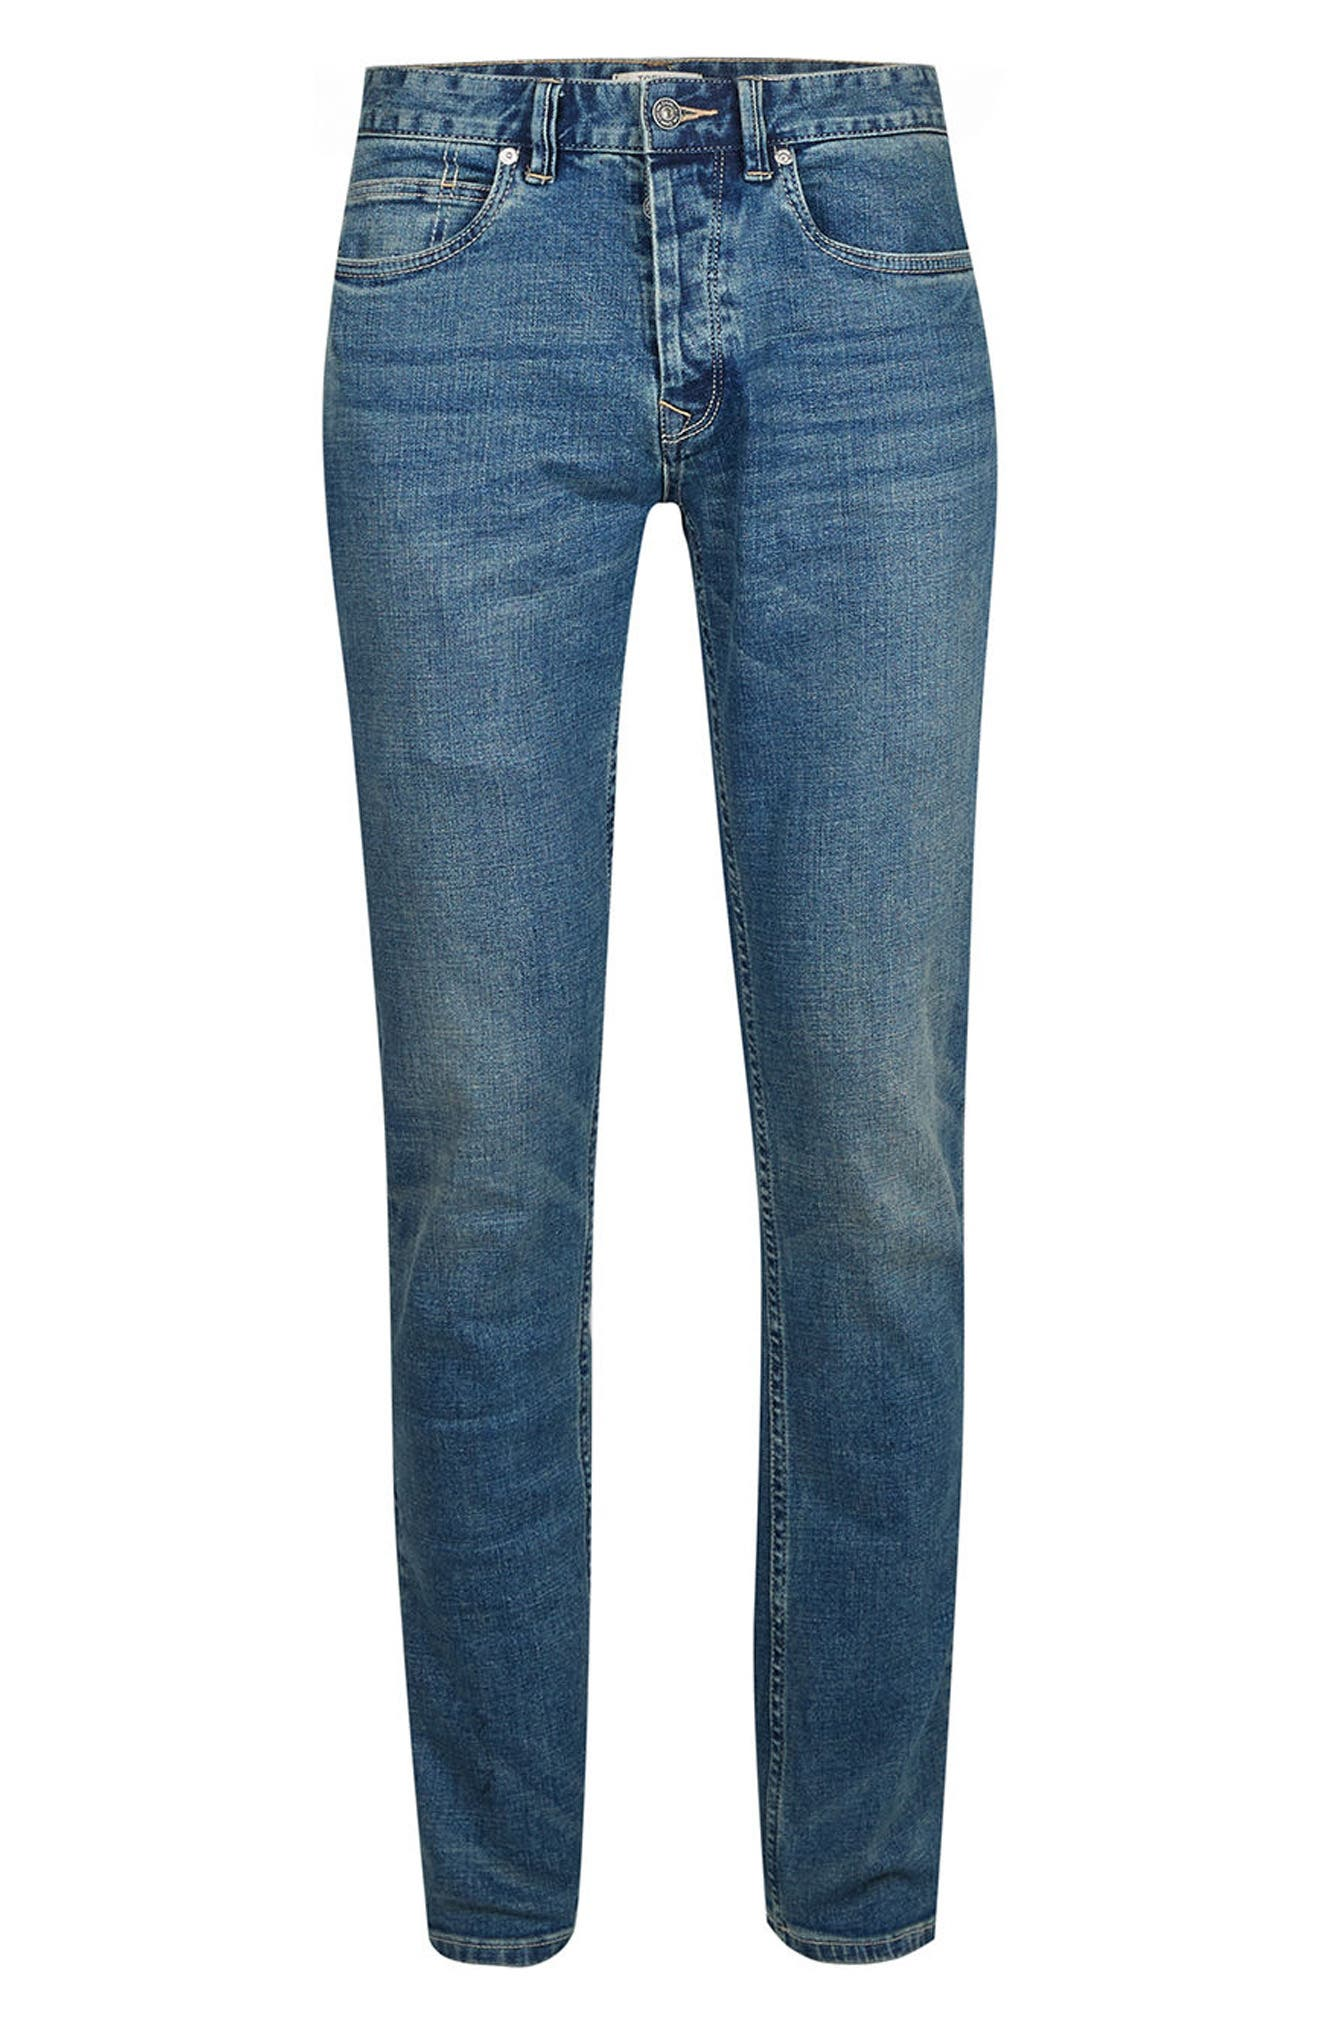 Stretch Slim Fit Jeans,                             Alternate thumbnail 6, color,                             Blue